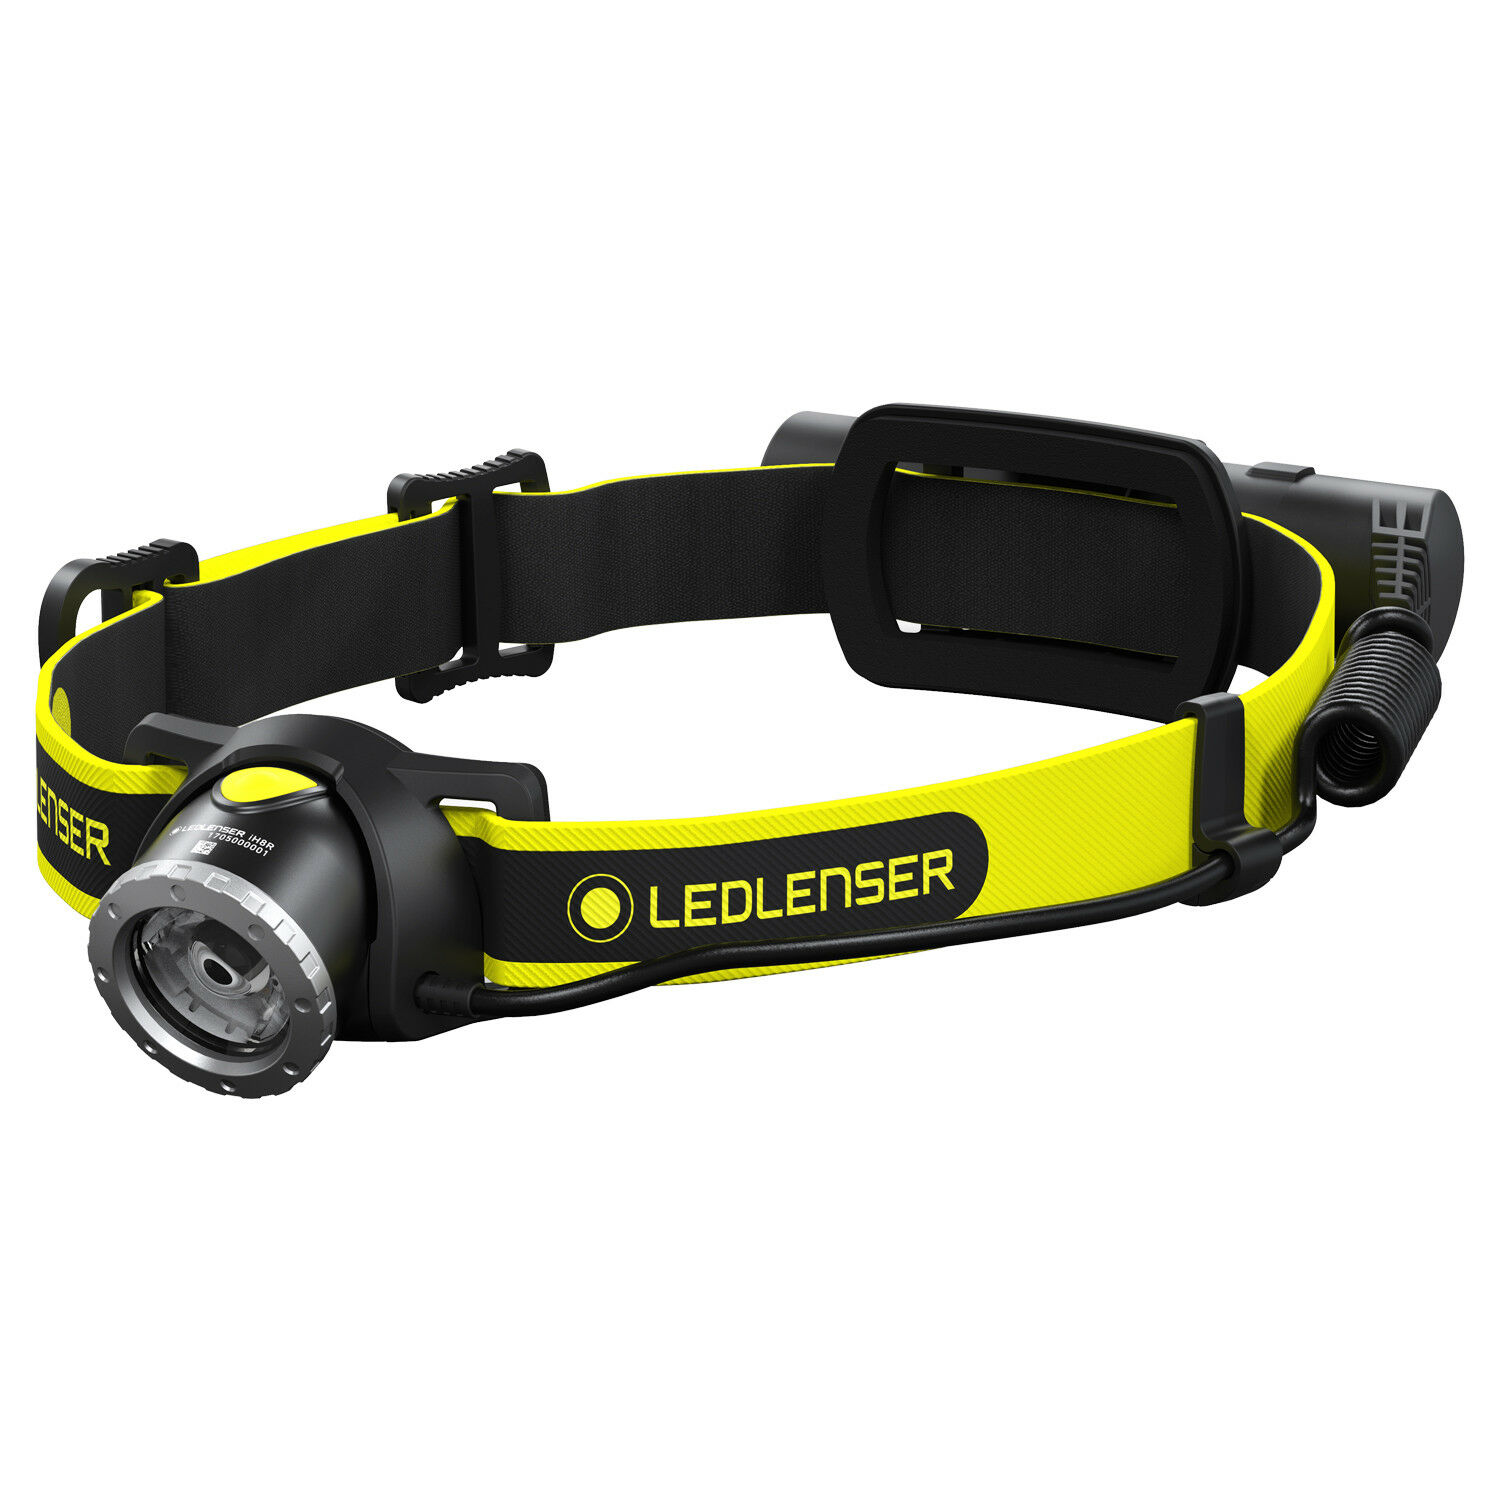 LED Lenser iH8R Rechargeable Head Light Torch 600 Lumens   clearance up to 70%